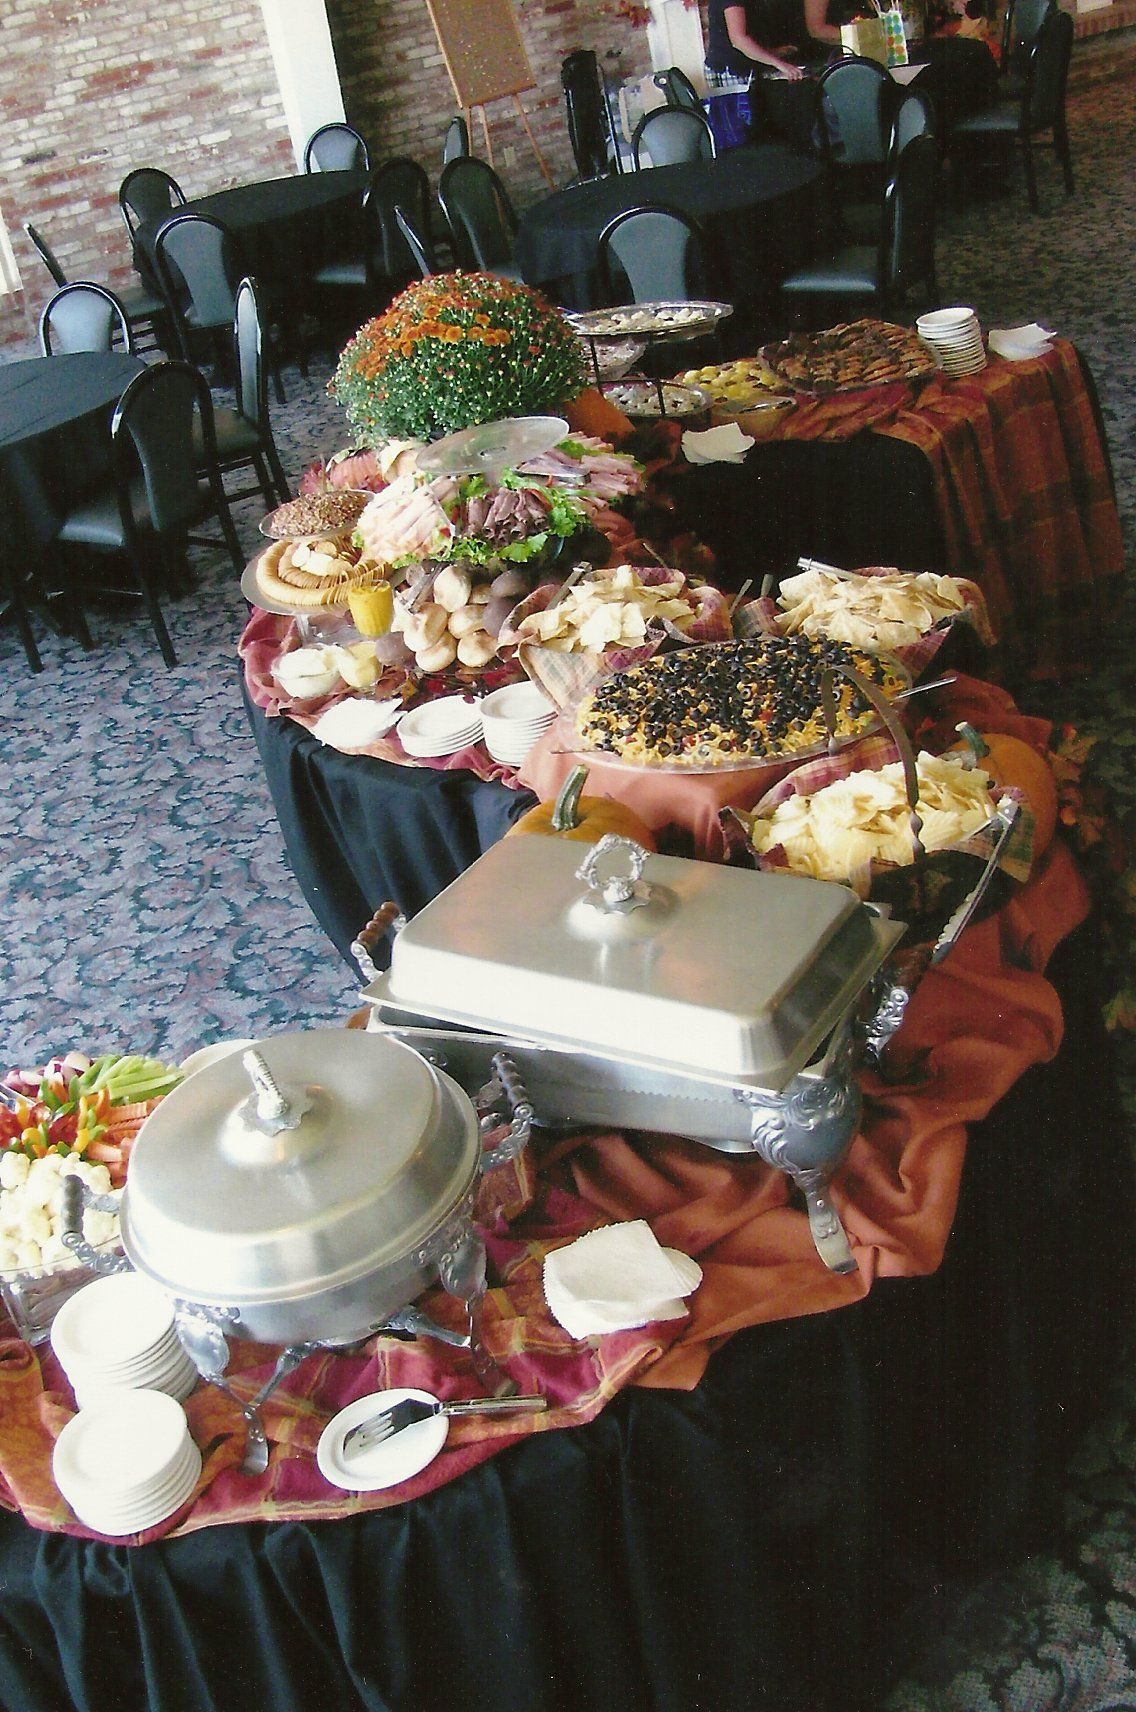 Catering Buffet Set Up Diagram 1989 Mustang Alternator Wiring All Of These Pictures Are Parties That I Managed At My